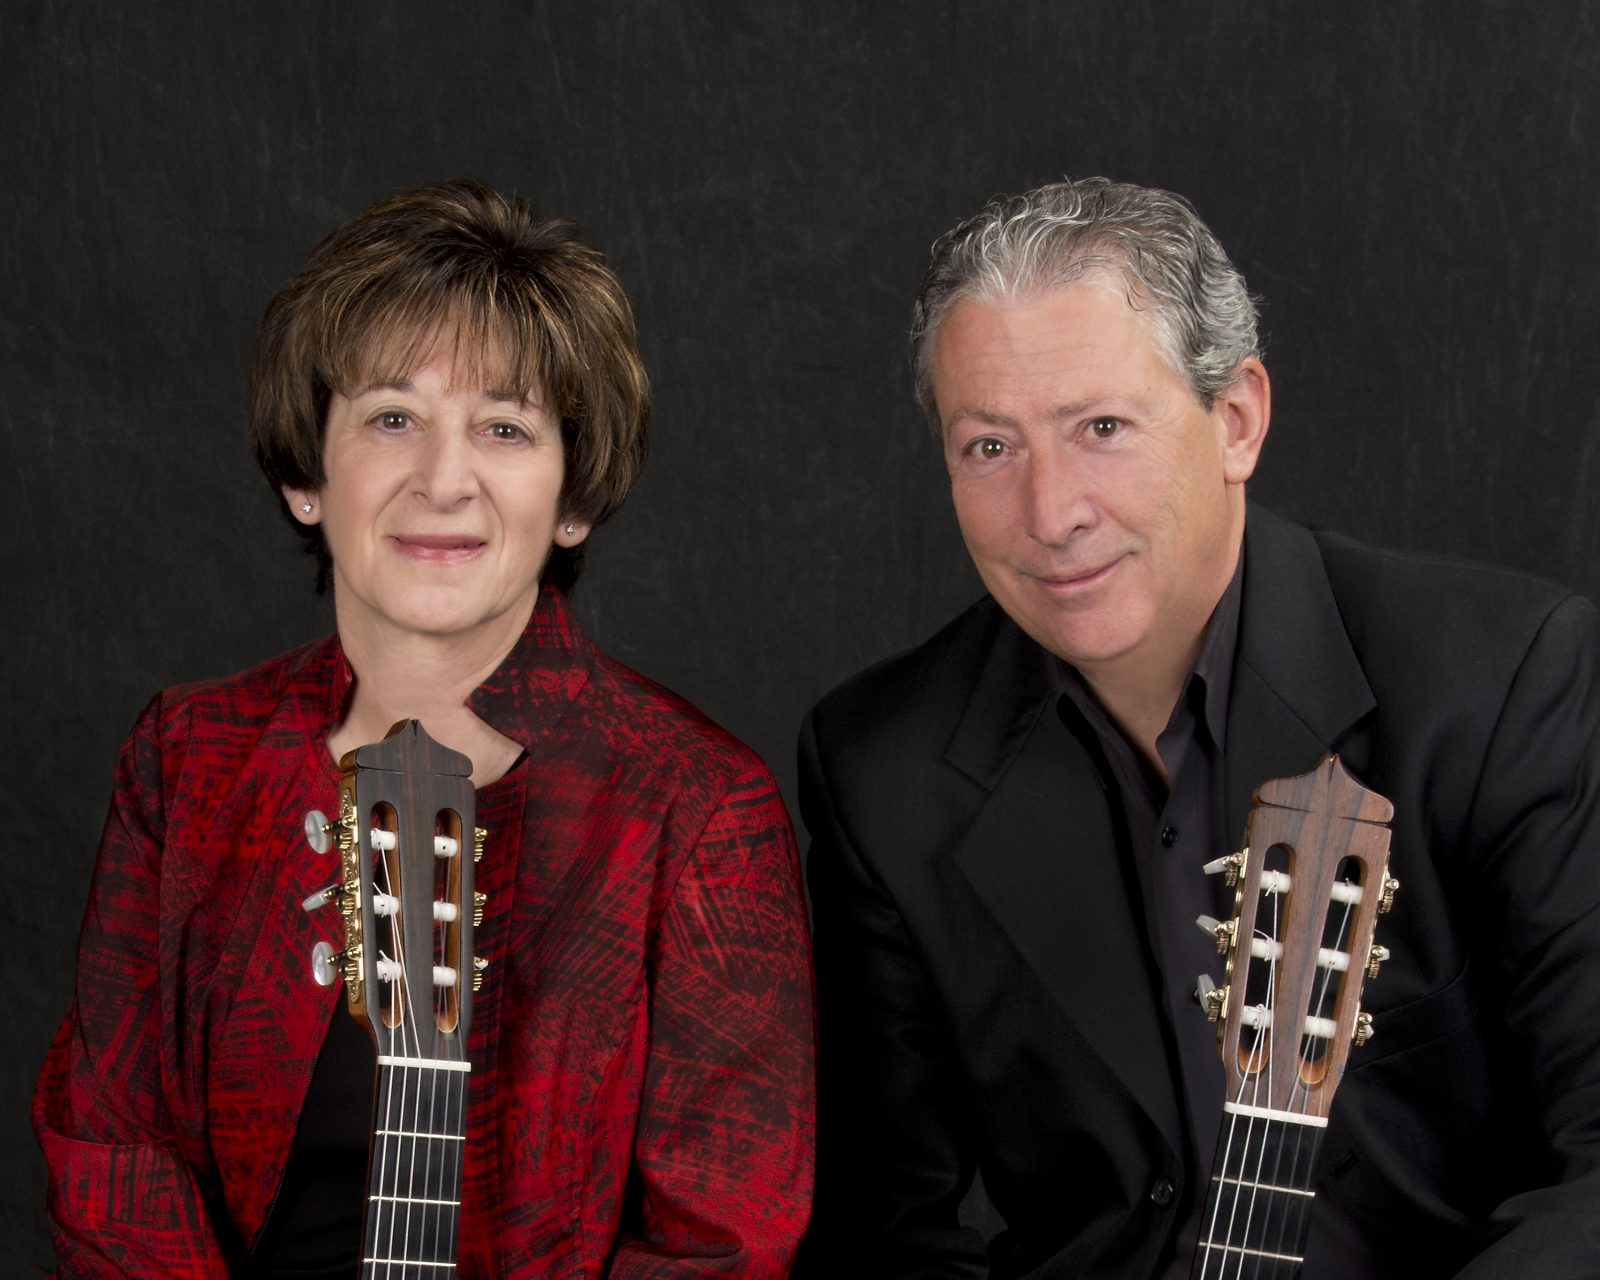 Joanne Castellani and Michael Andriaccio are joining other musicians for a free recital.